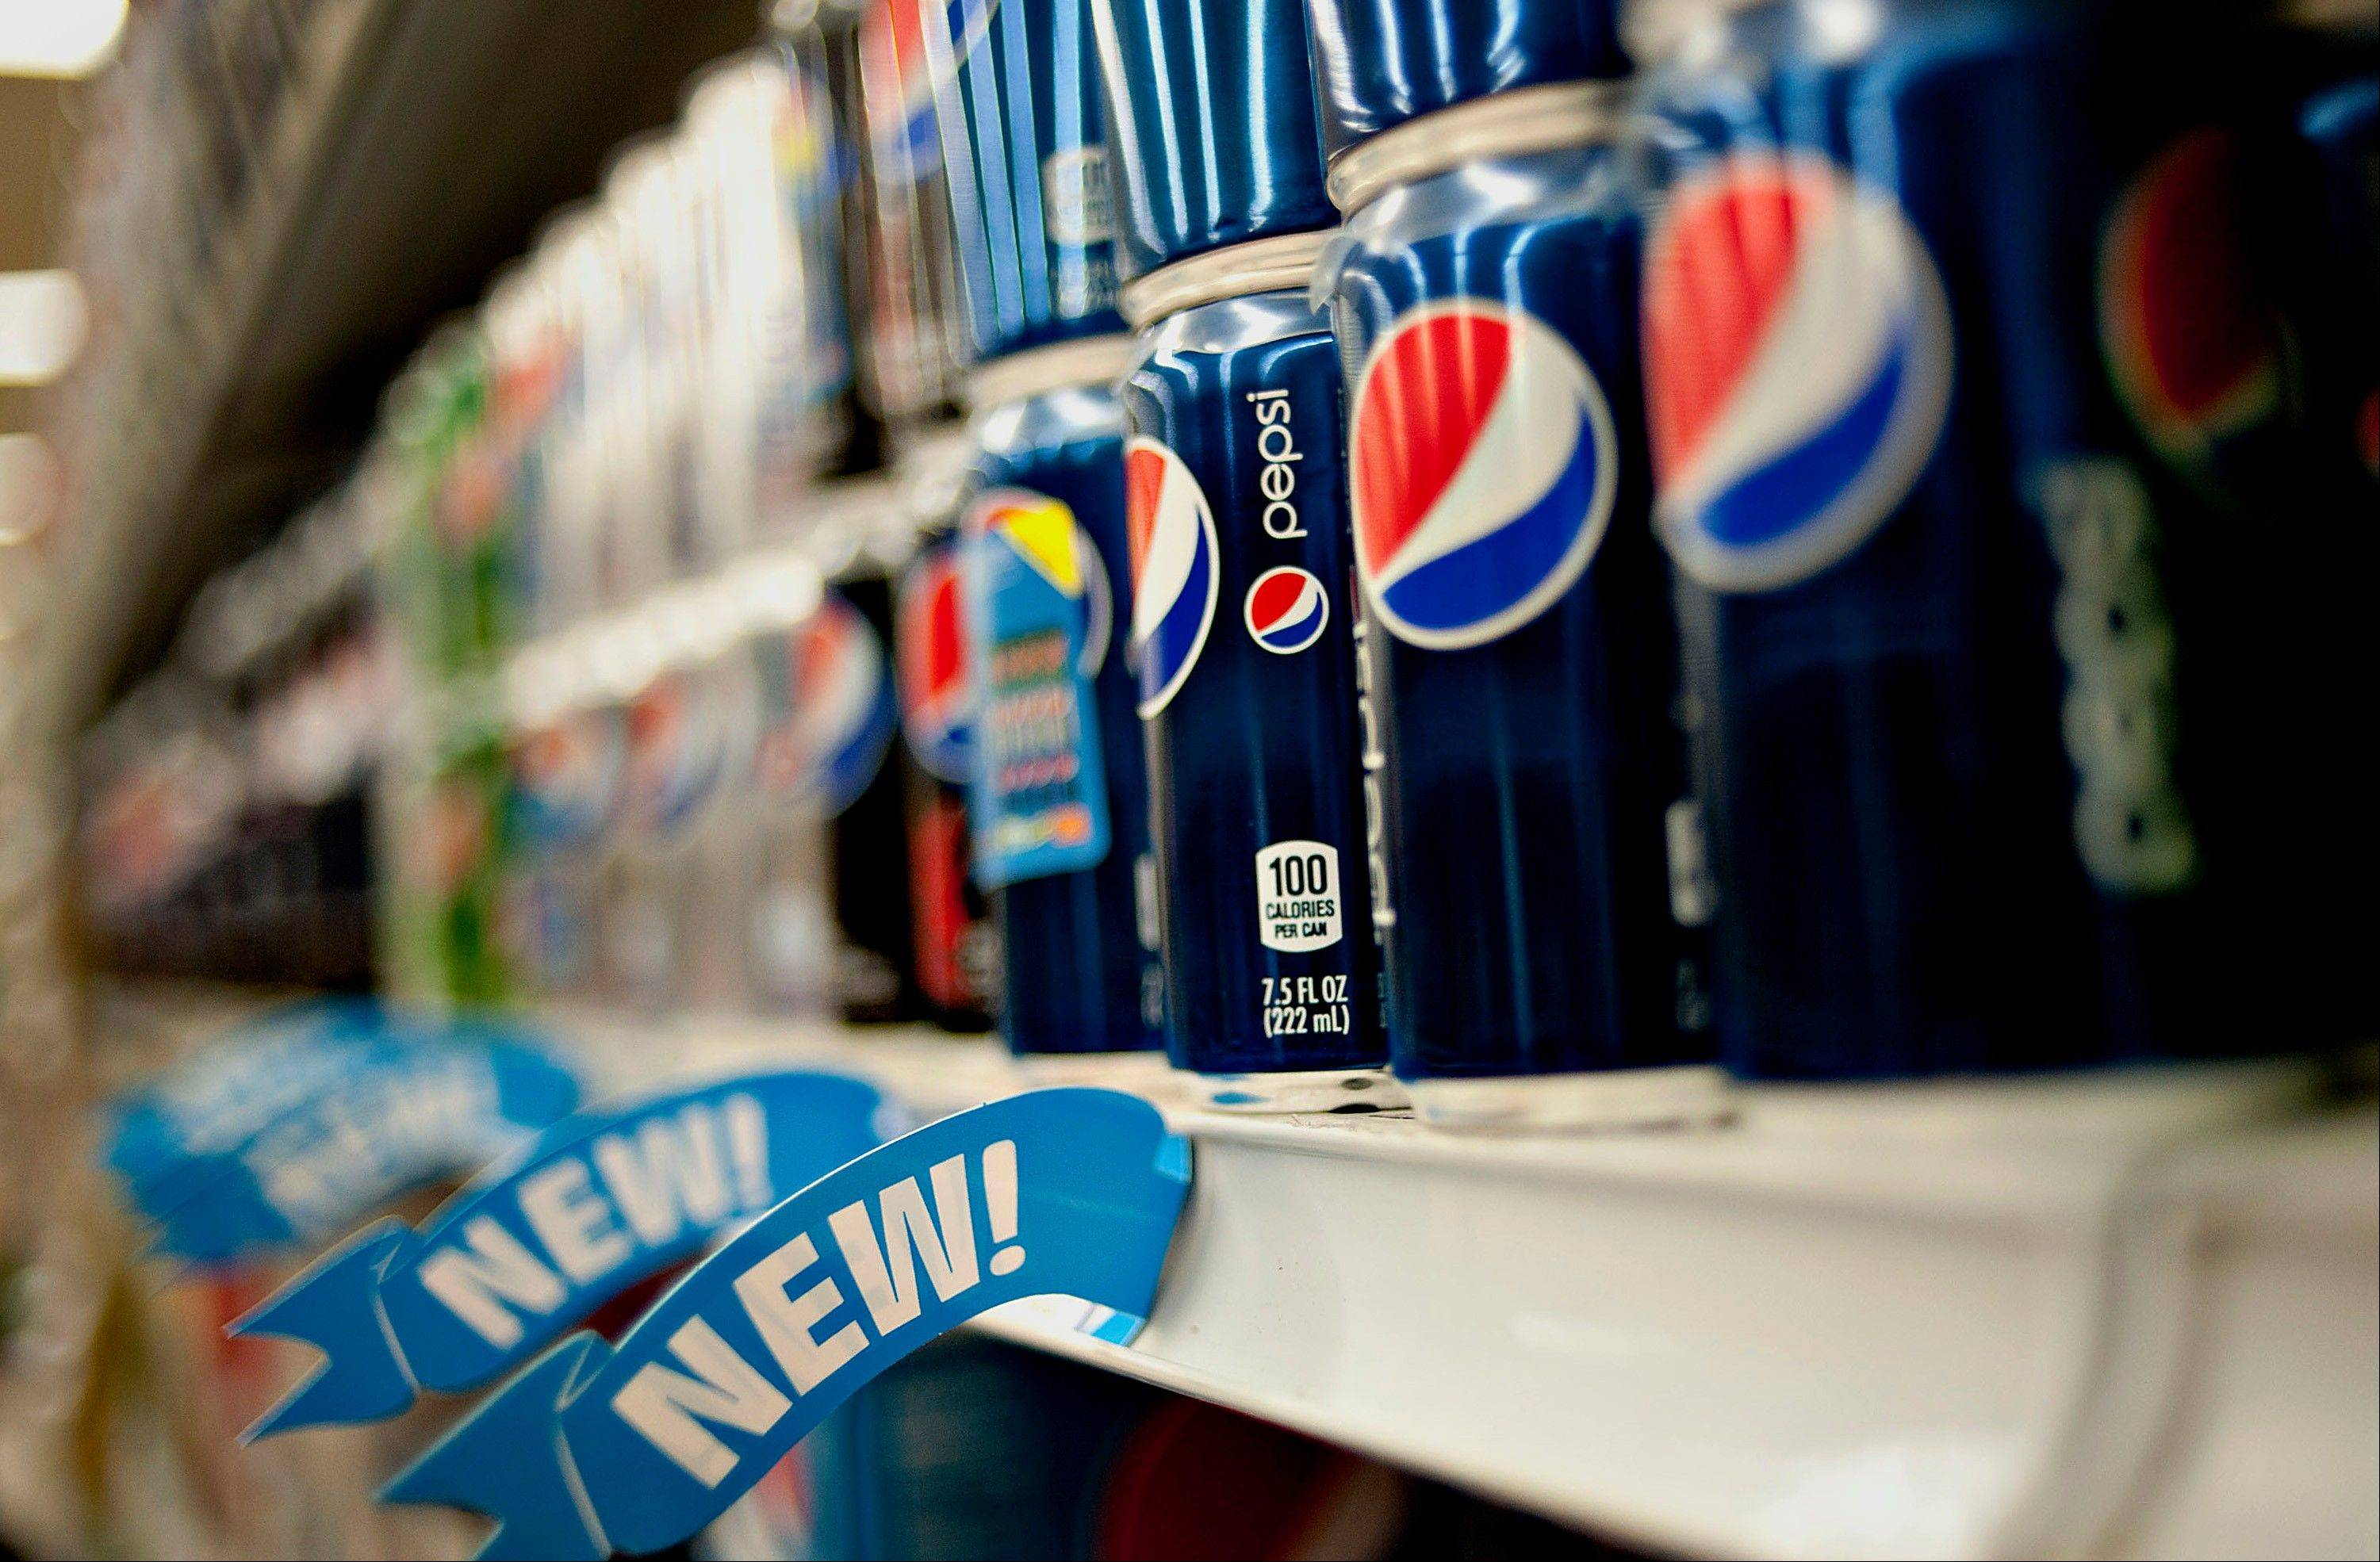 PepsiCo Inc. says its net income dipped 5 percent in the third quarter, as the food and beverage maker continued to pour more money into marketing to bolster its flagship brands.